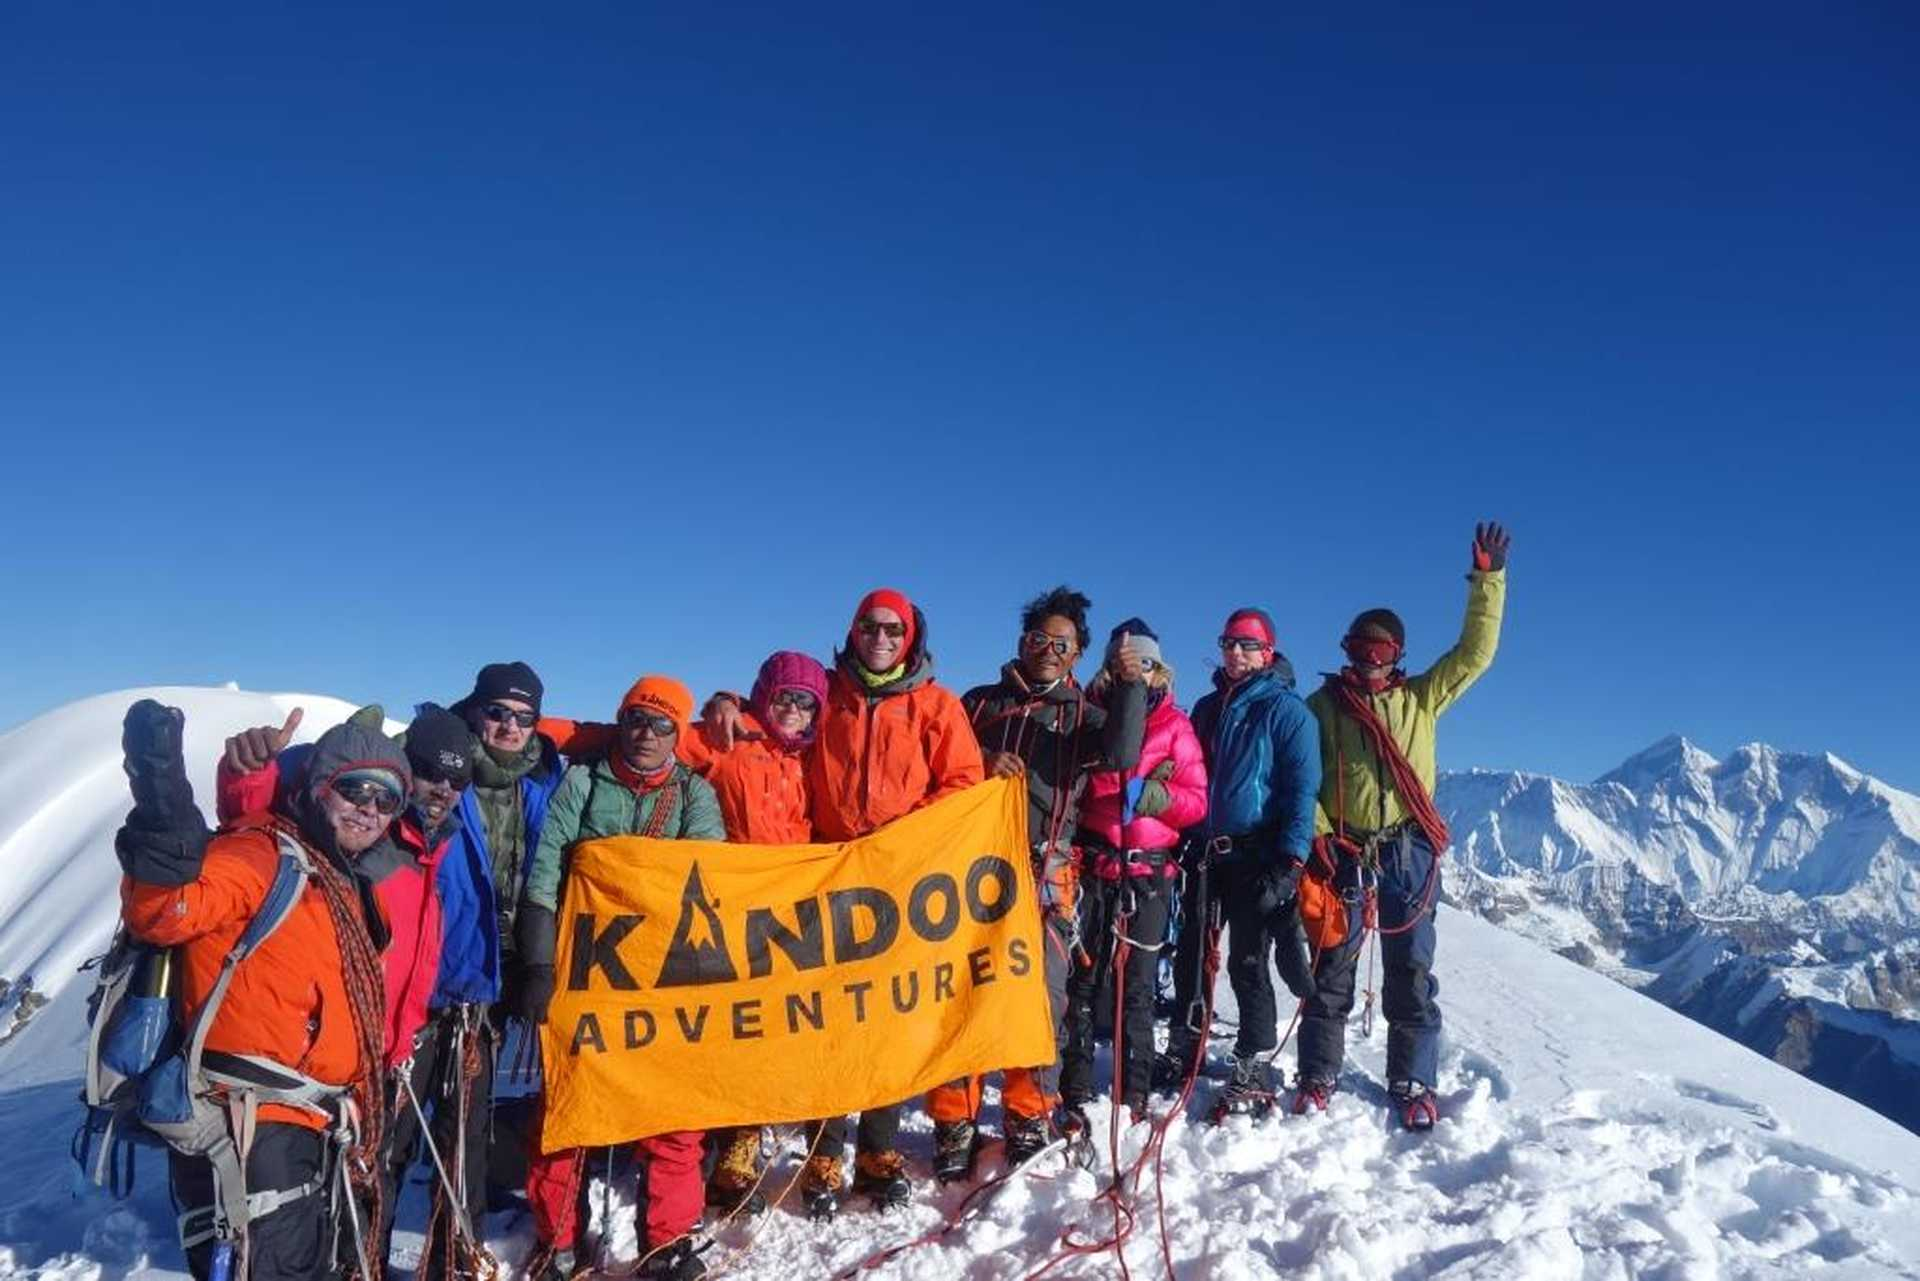 Kandoo group on Mera Peak summit